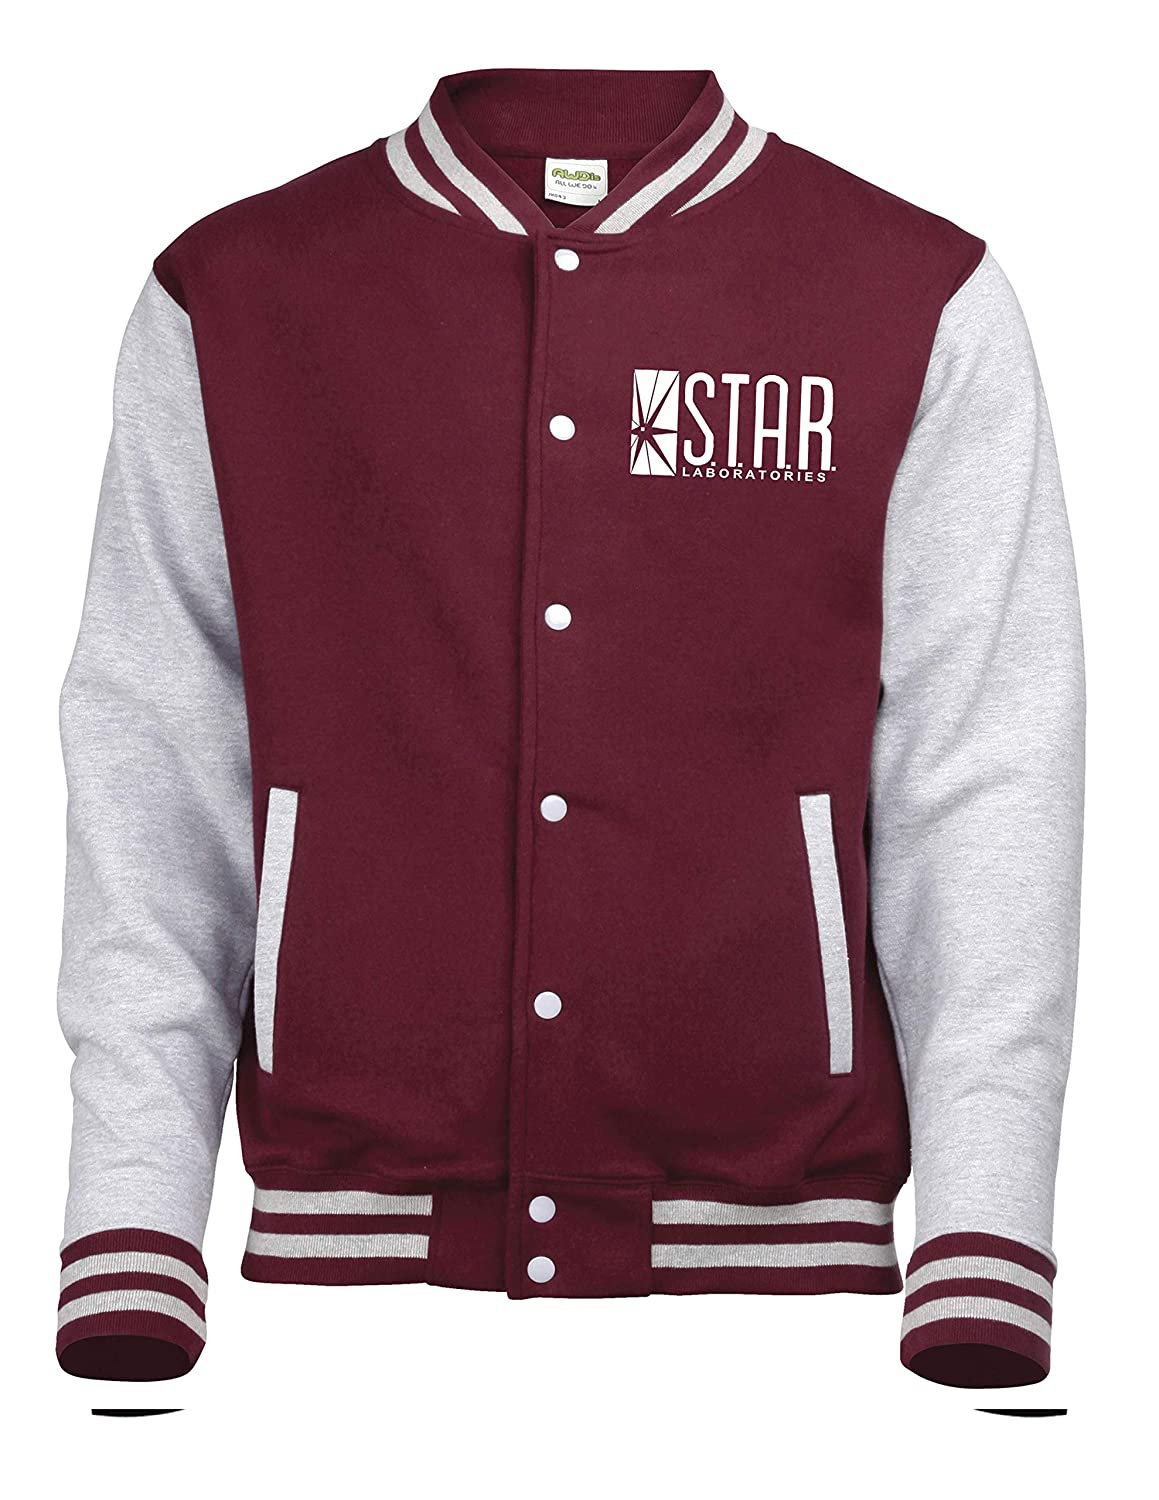 Labs Printed Varsity Jacket Snapit Today Funny Laboratories Star Top The Flash S.T.A.R